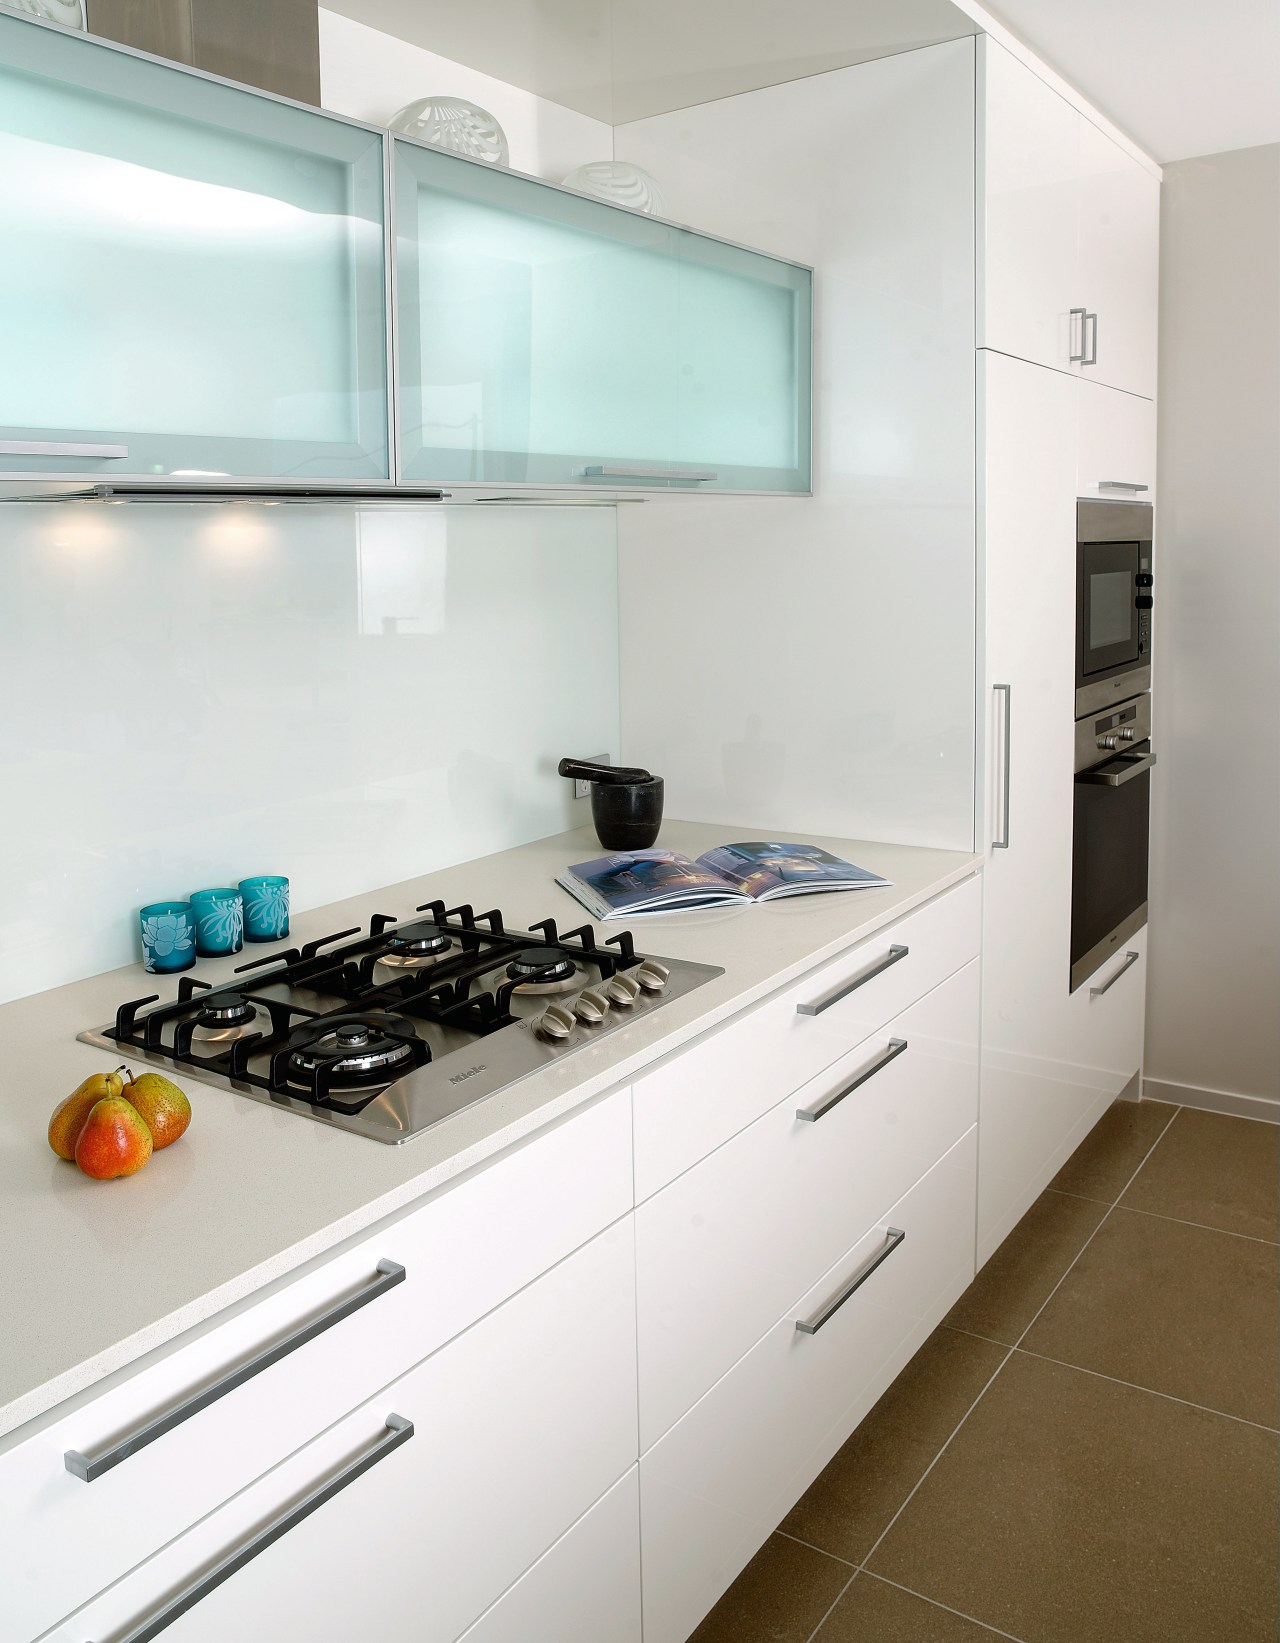 A view of a kitchen with some Miele cabinetry, countertop, home appliance, interior design, kitchen, room, white